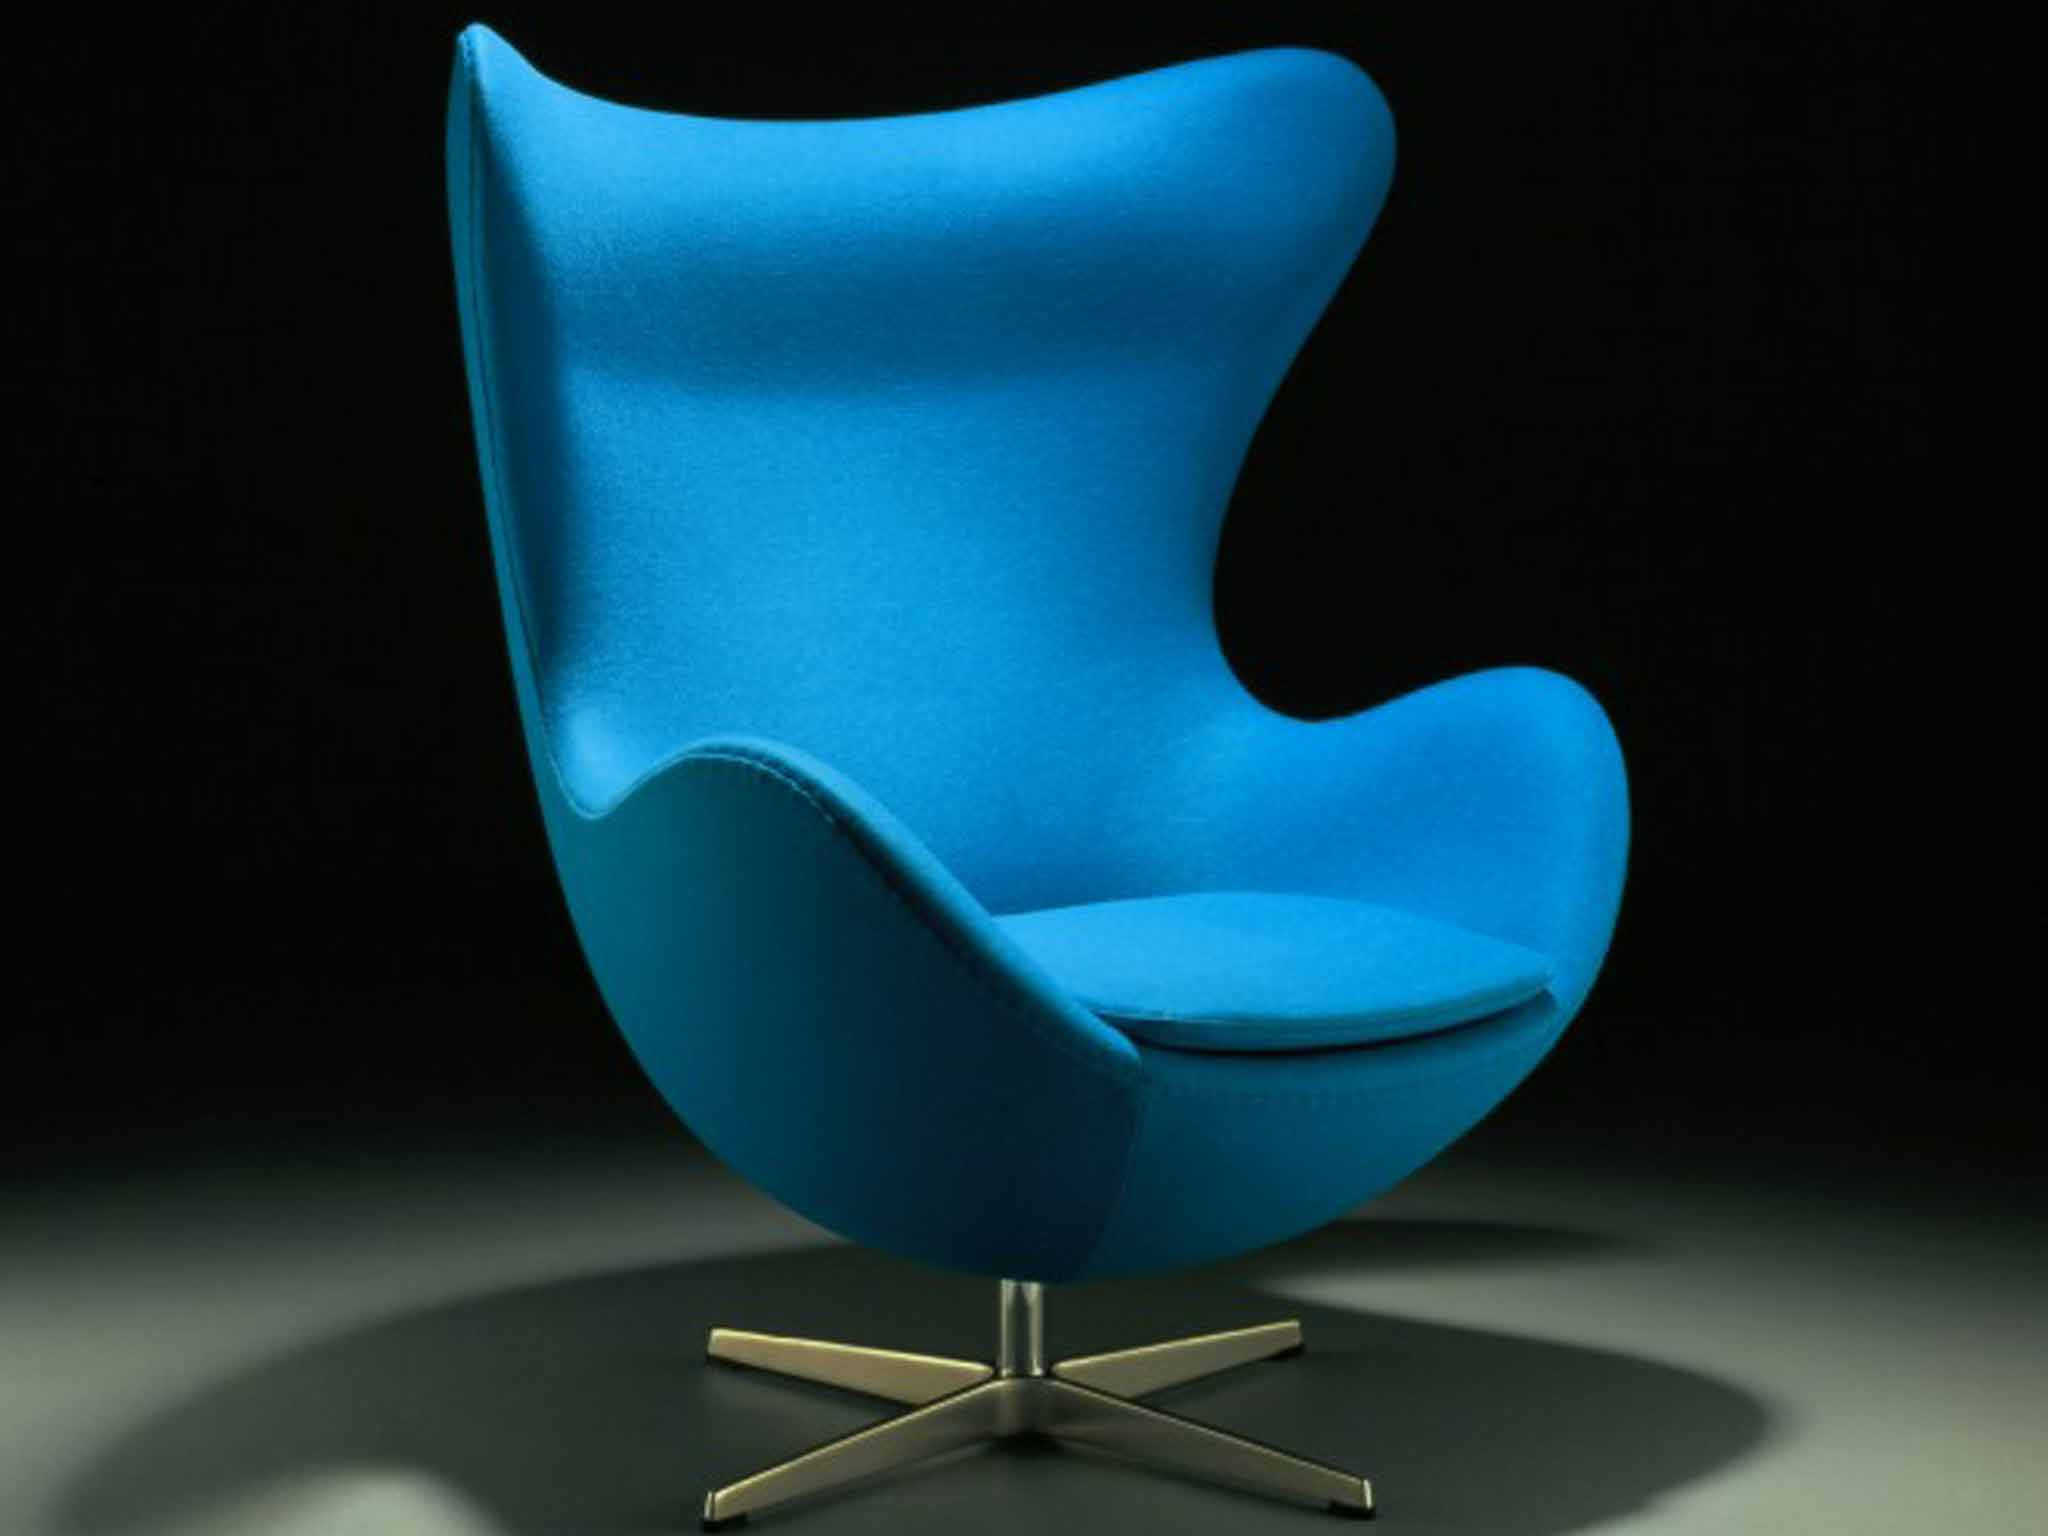 Mid Century Modern Furniture Uk why the uk replica furniture market is about to be hitnew